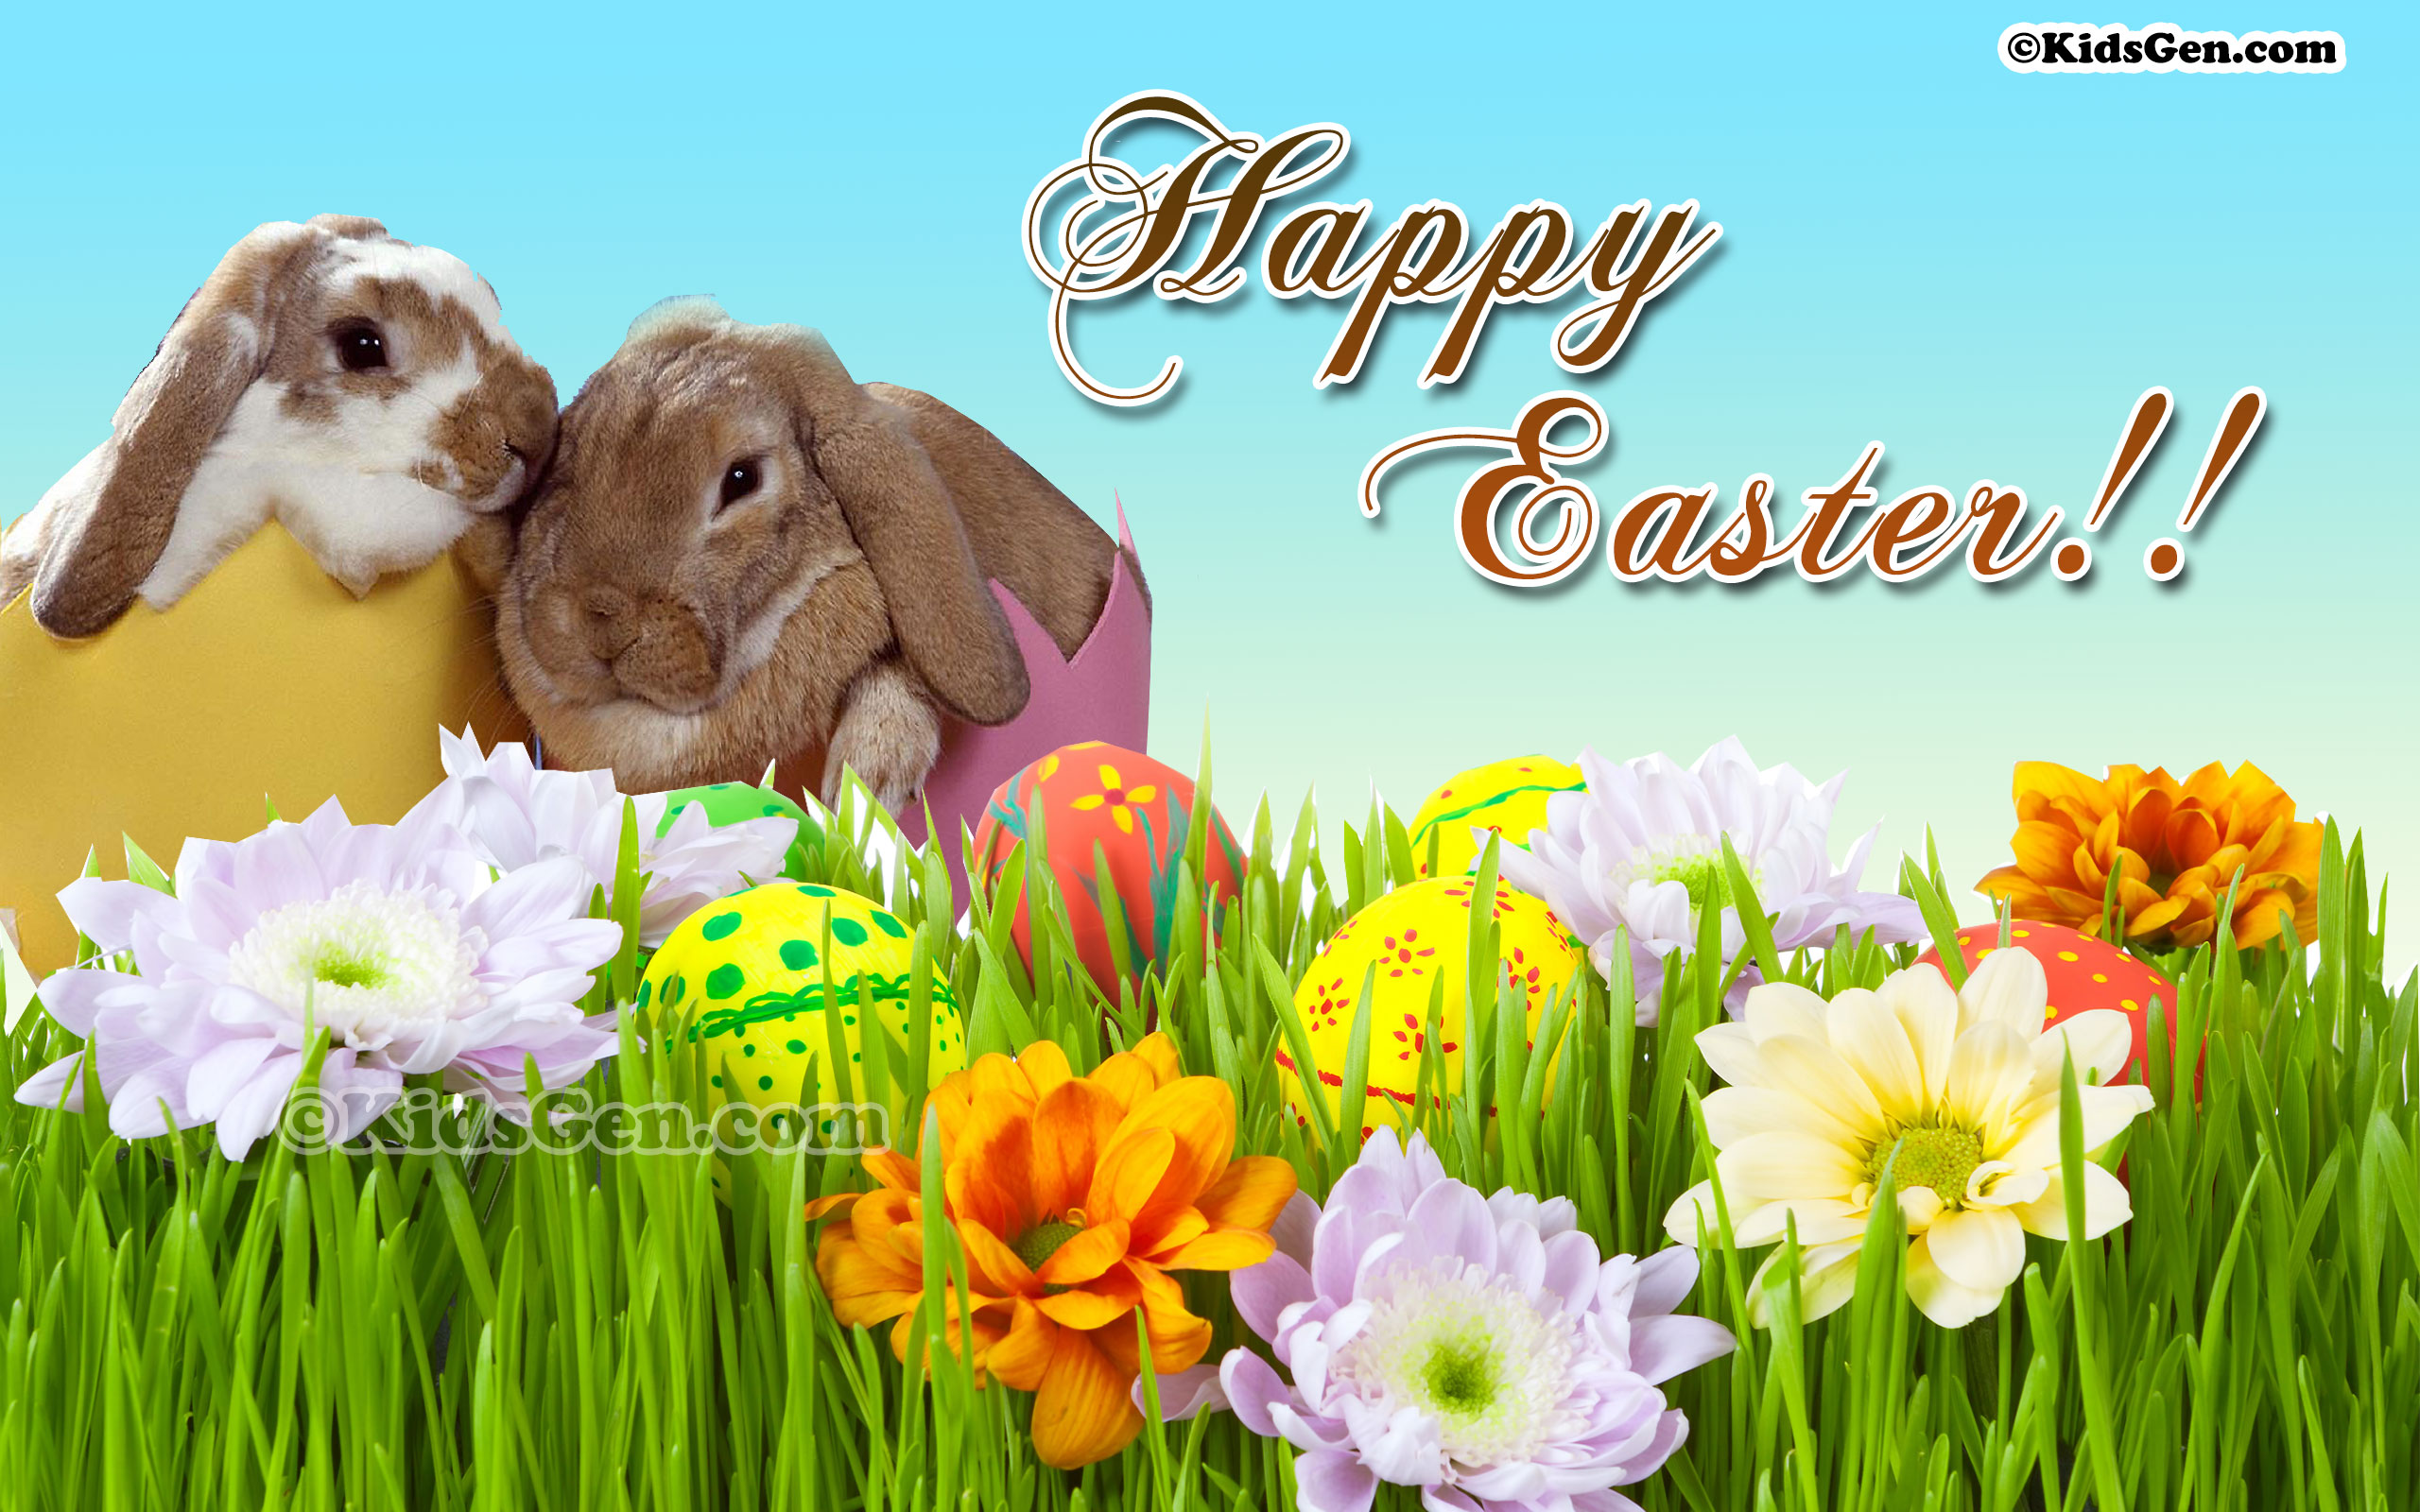 HD Wallpaper For Kids With Happy Easter Wishes